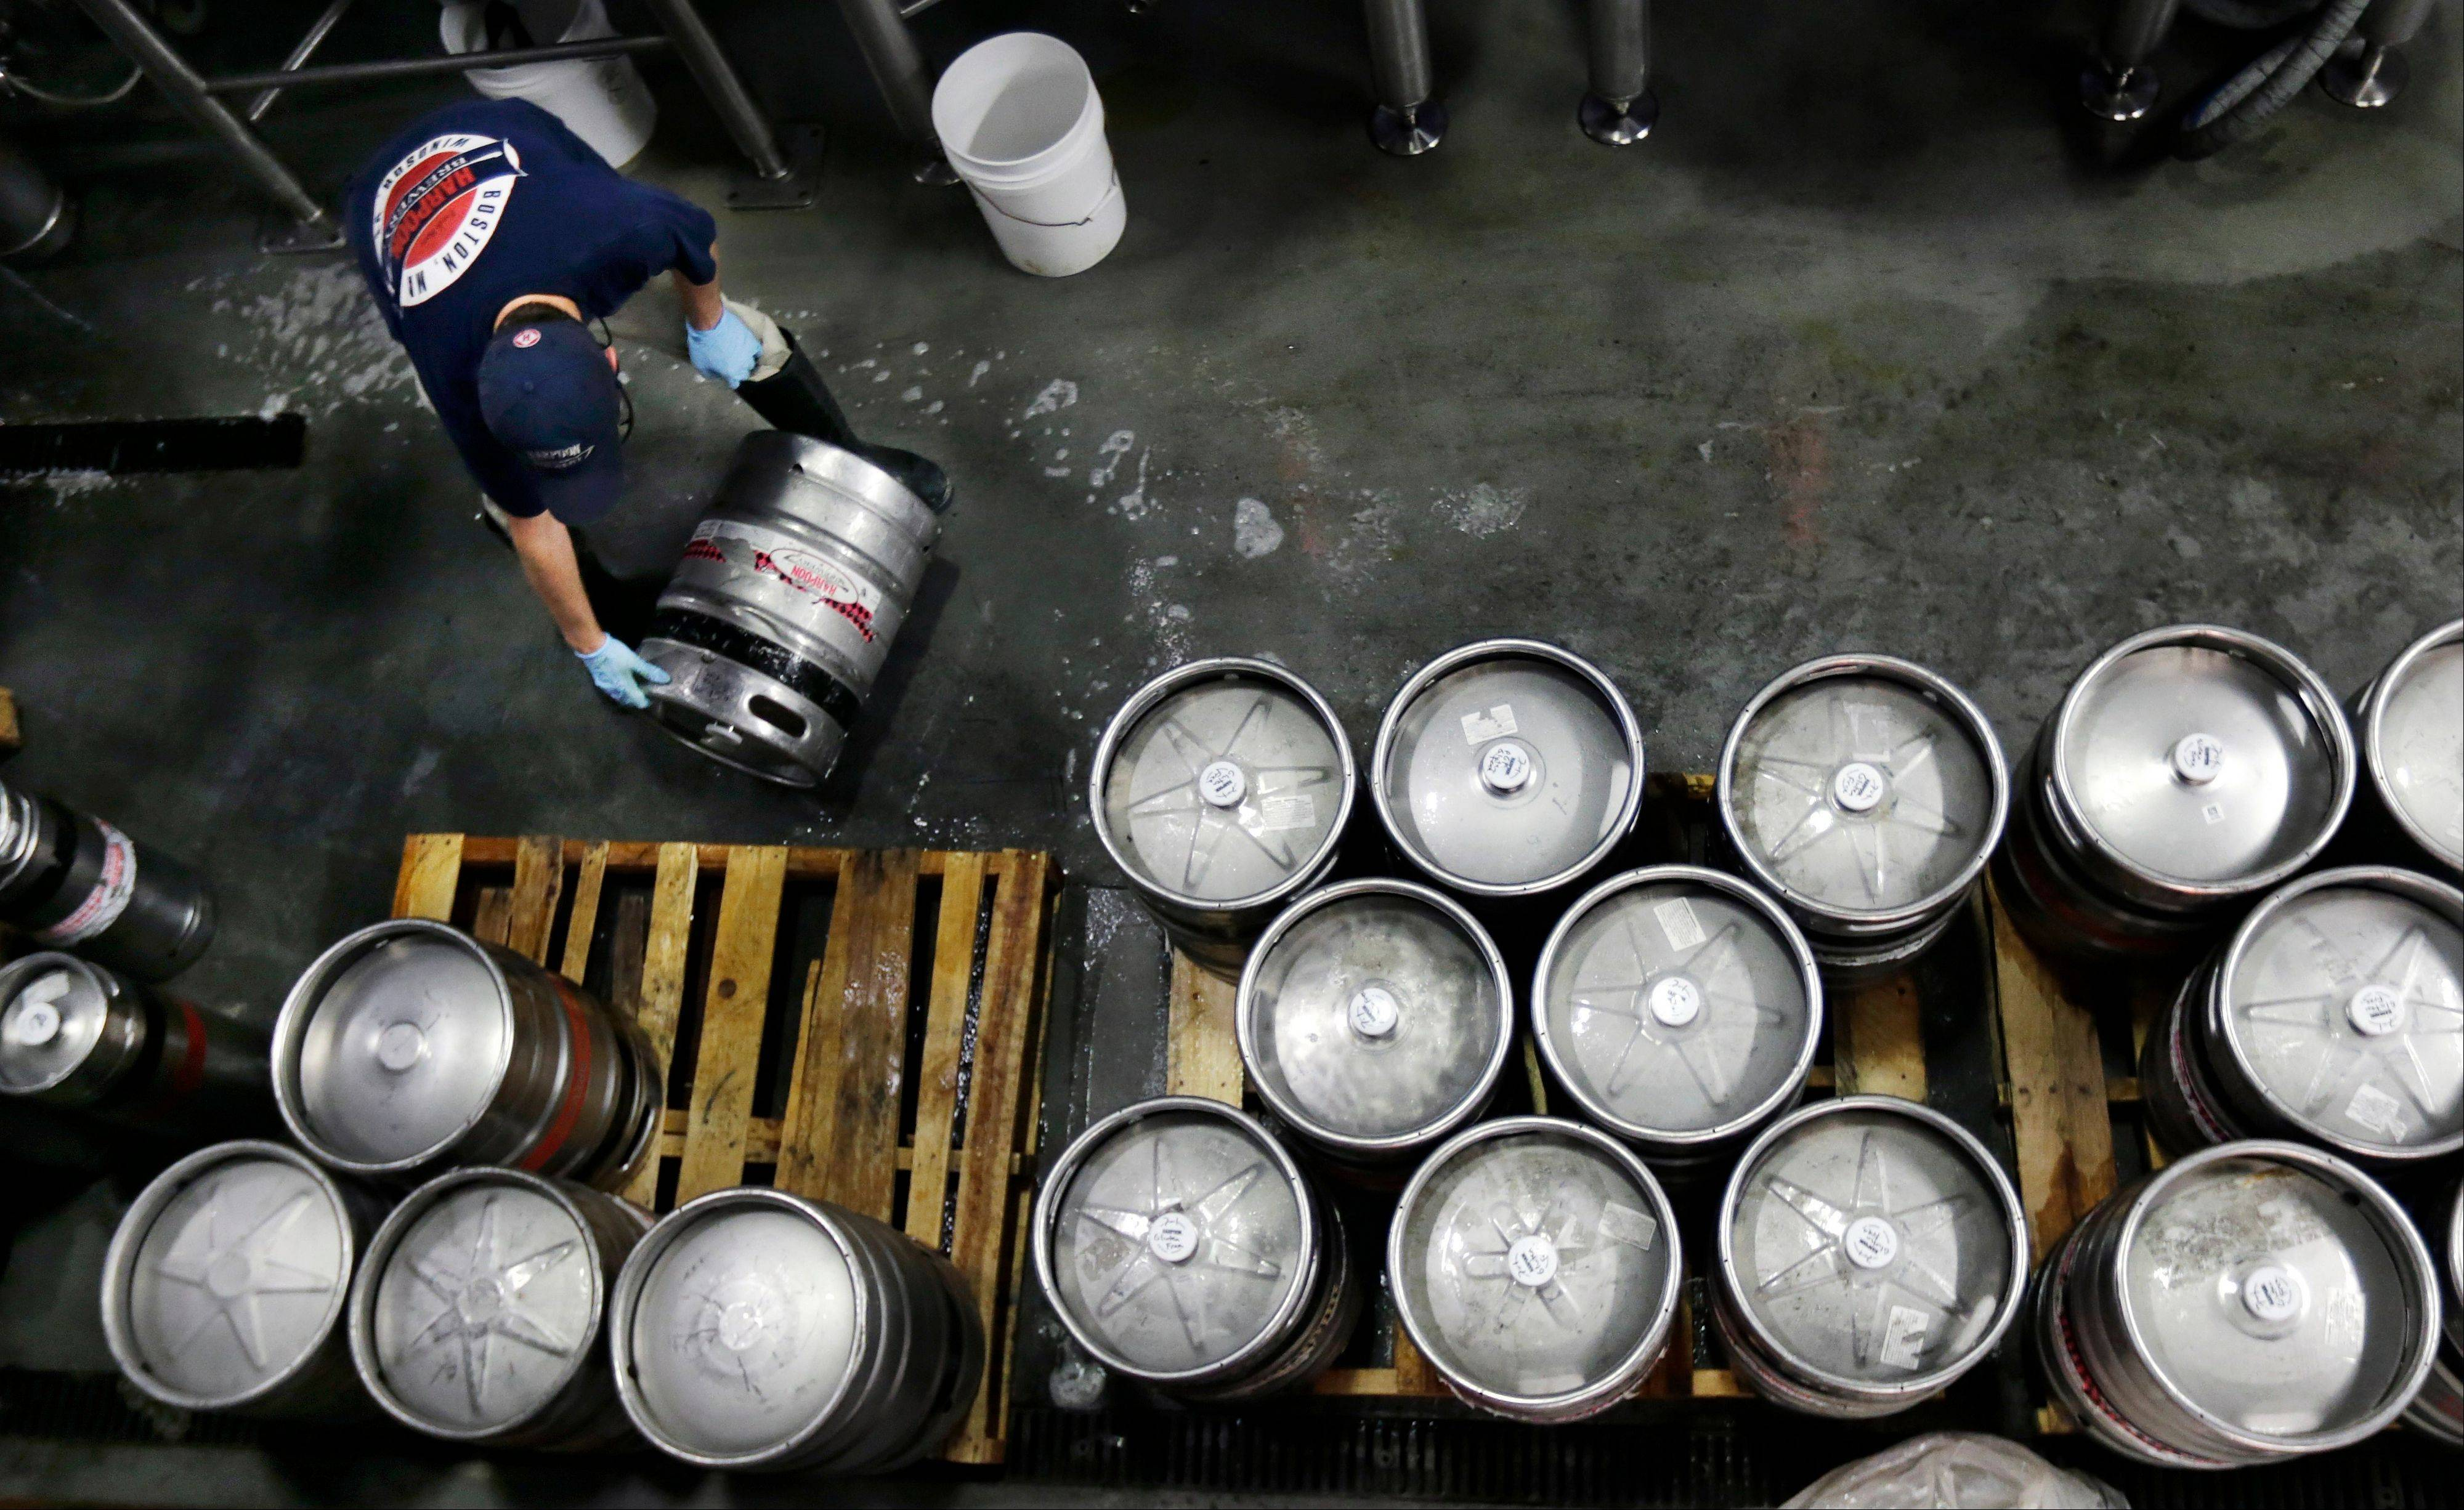 Associated Press/July 1, 2013Brewer Ken Hermann rolls a fresh keg of beer onto pallets at the Harpoon Brewery in the Seaport District of Boston. The Commerce Department reported Friday on orders placed with U.S. factories in June rose 1.5 percent.